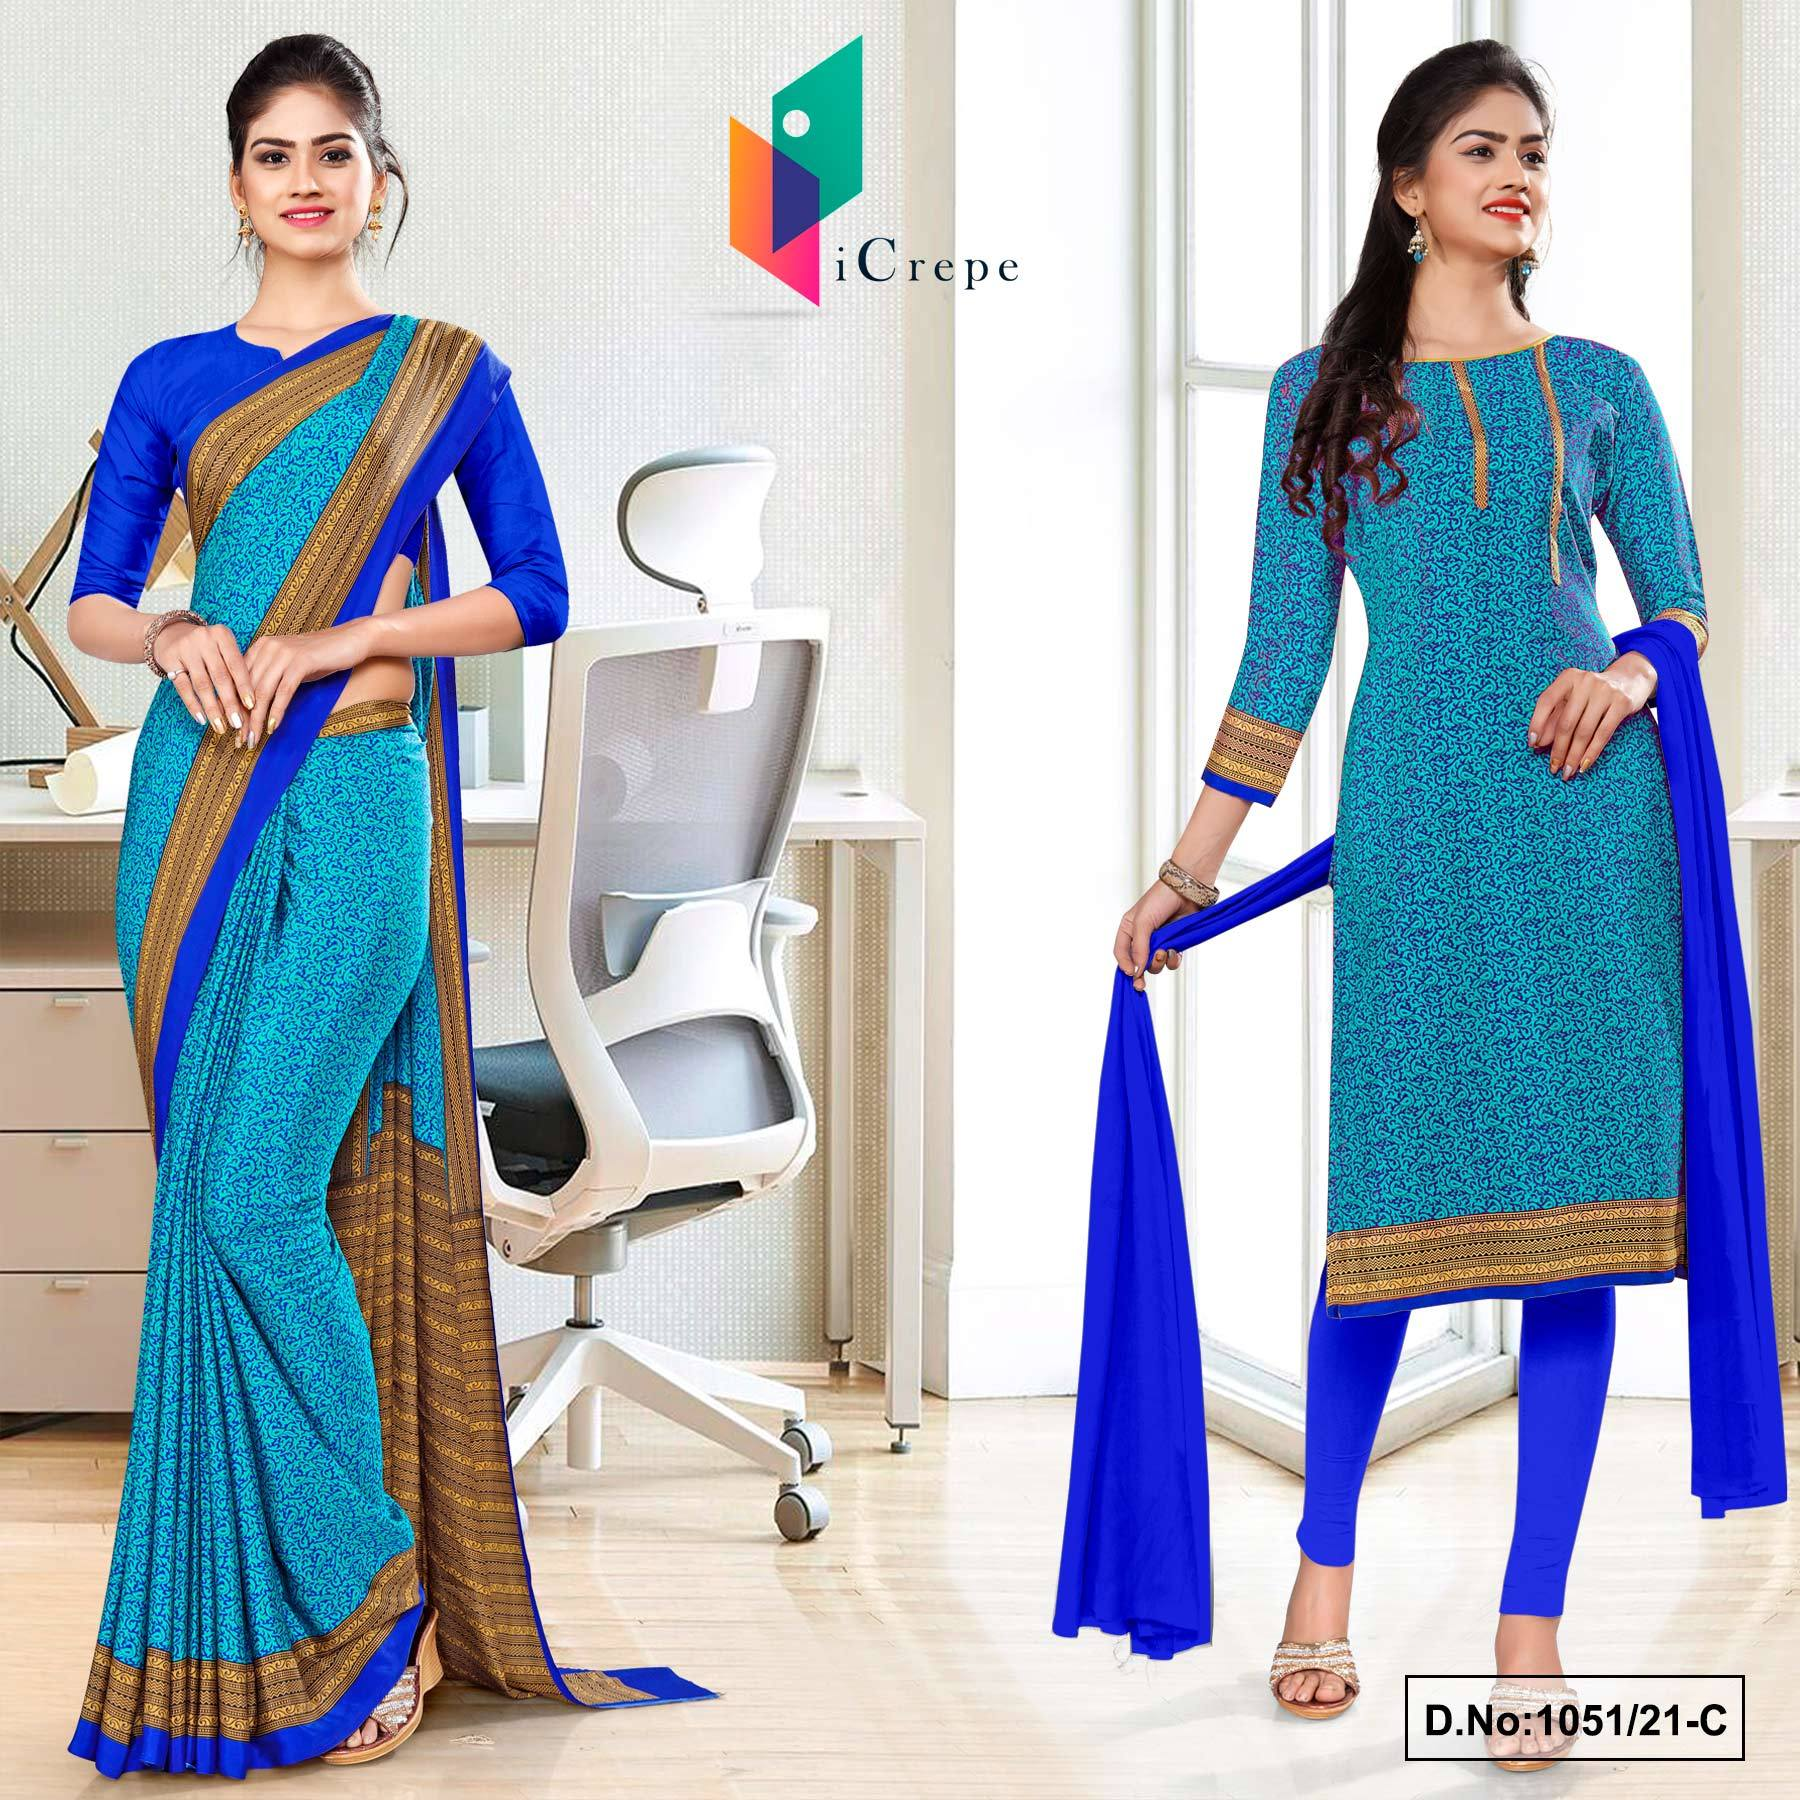 Sea Green Blue Paisley Print Premium Italian Silk Crepe Uniform Saree Salwar Combo for Corporate Employees